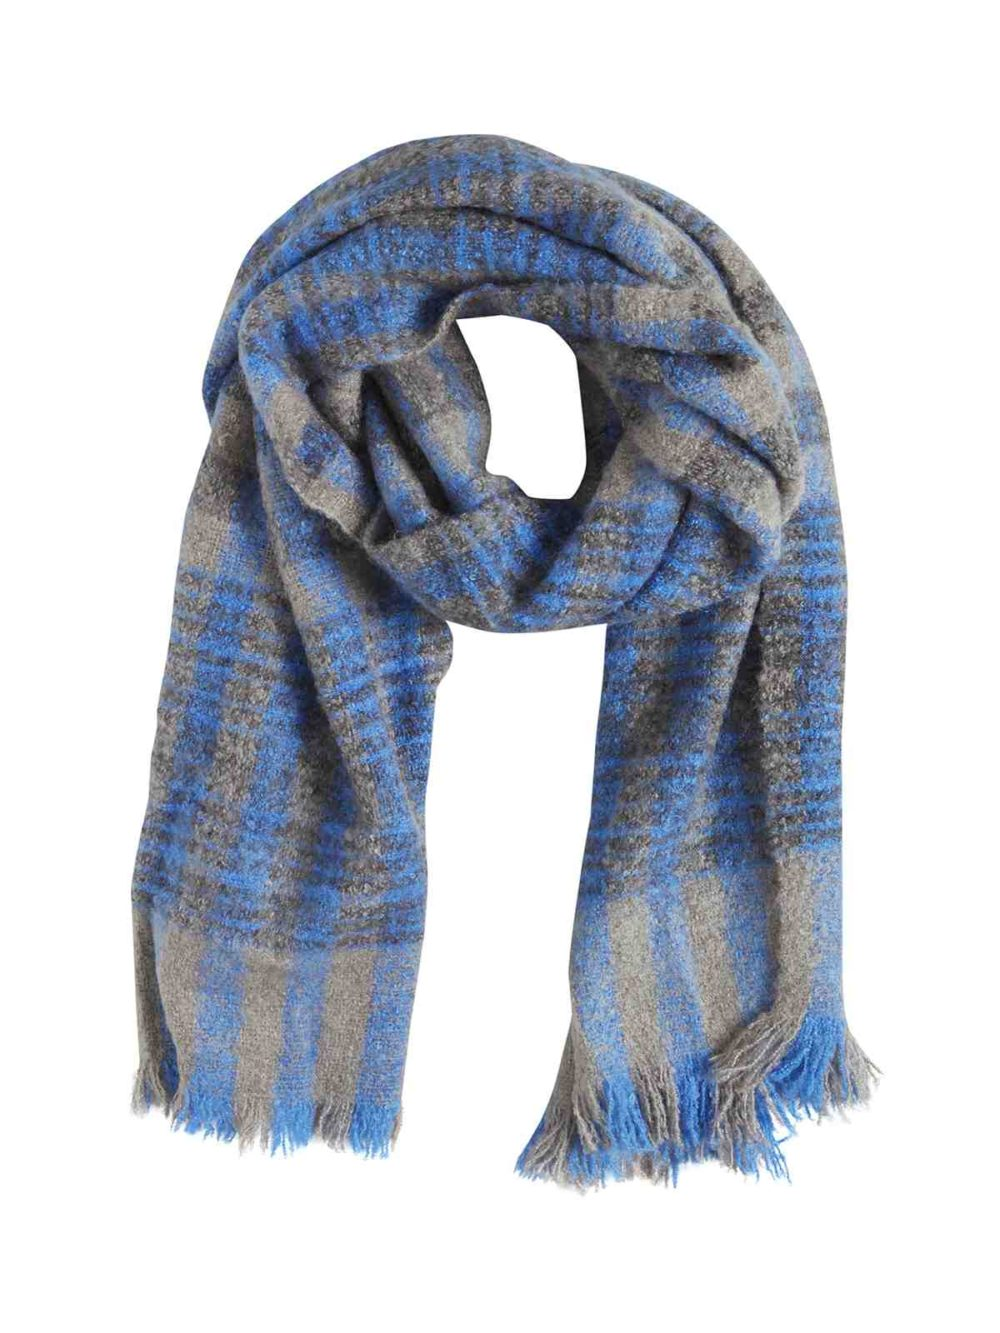 A Edris Scarf ICHI Katie Kerr Women's Clothing